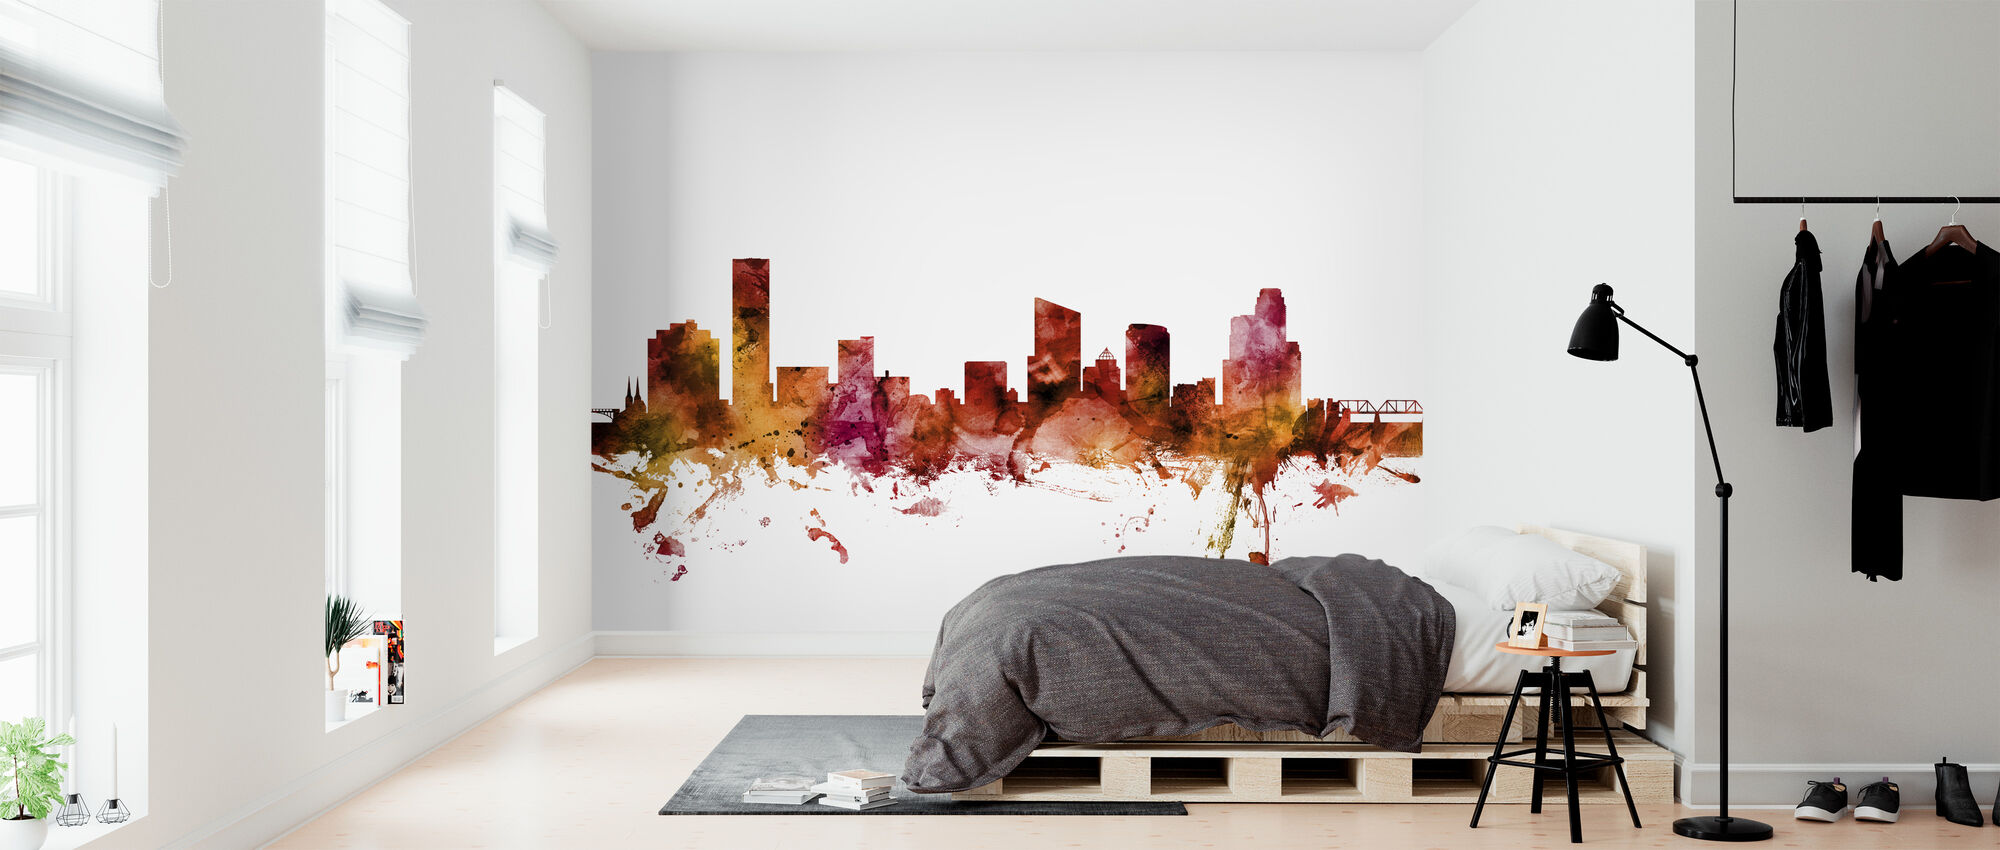 Grand Rapids Michigan Skyline - Behang - Slaapkamer